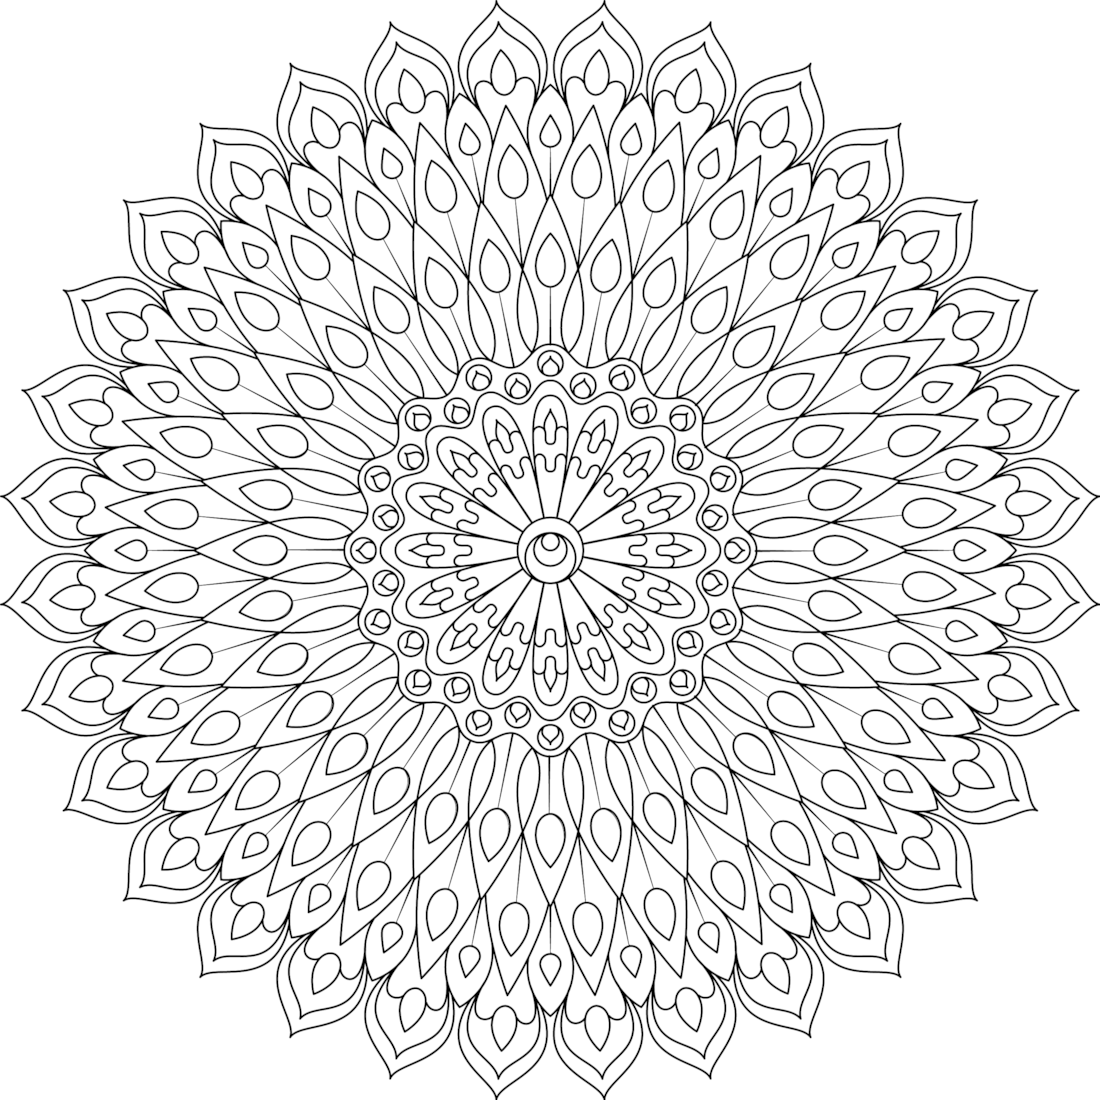 word mandala coloring pages here are difficult mandalas coloring pages for adults to mandala pages coloring word